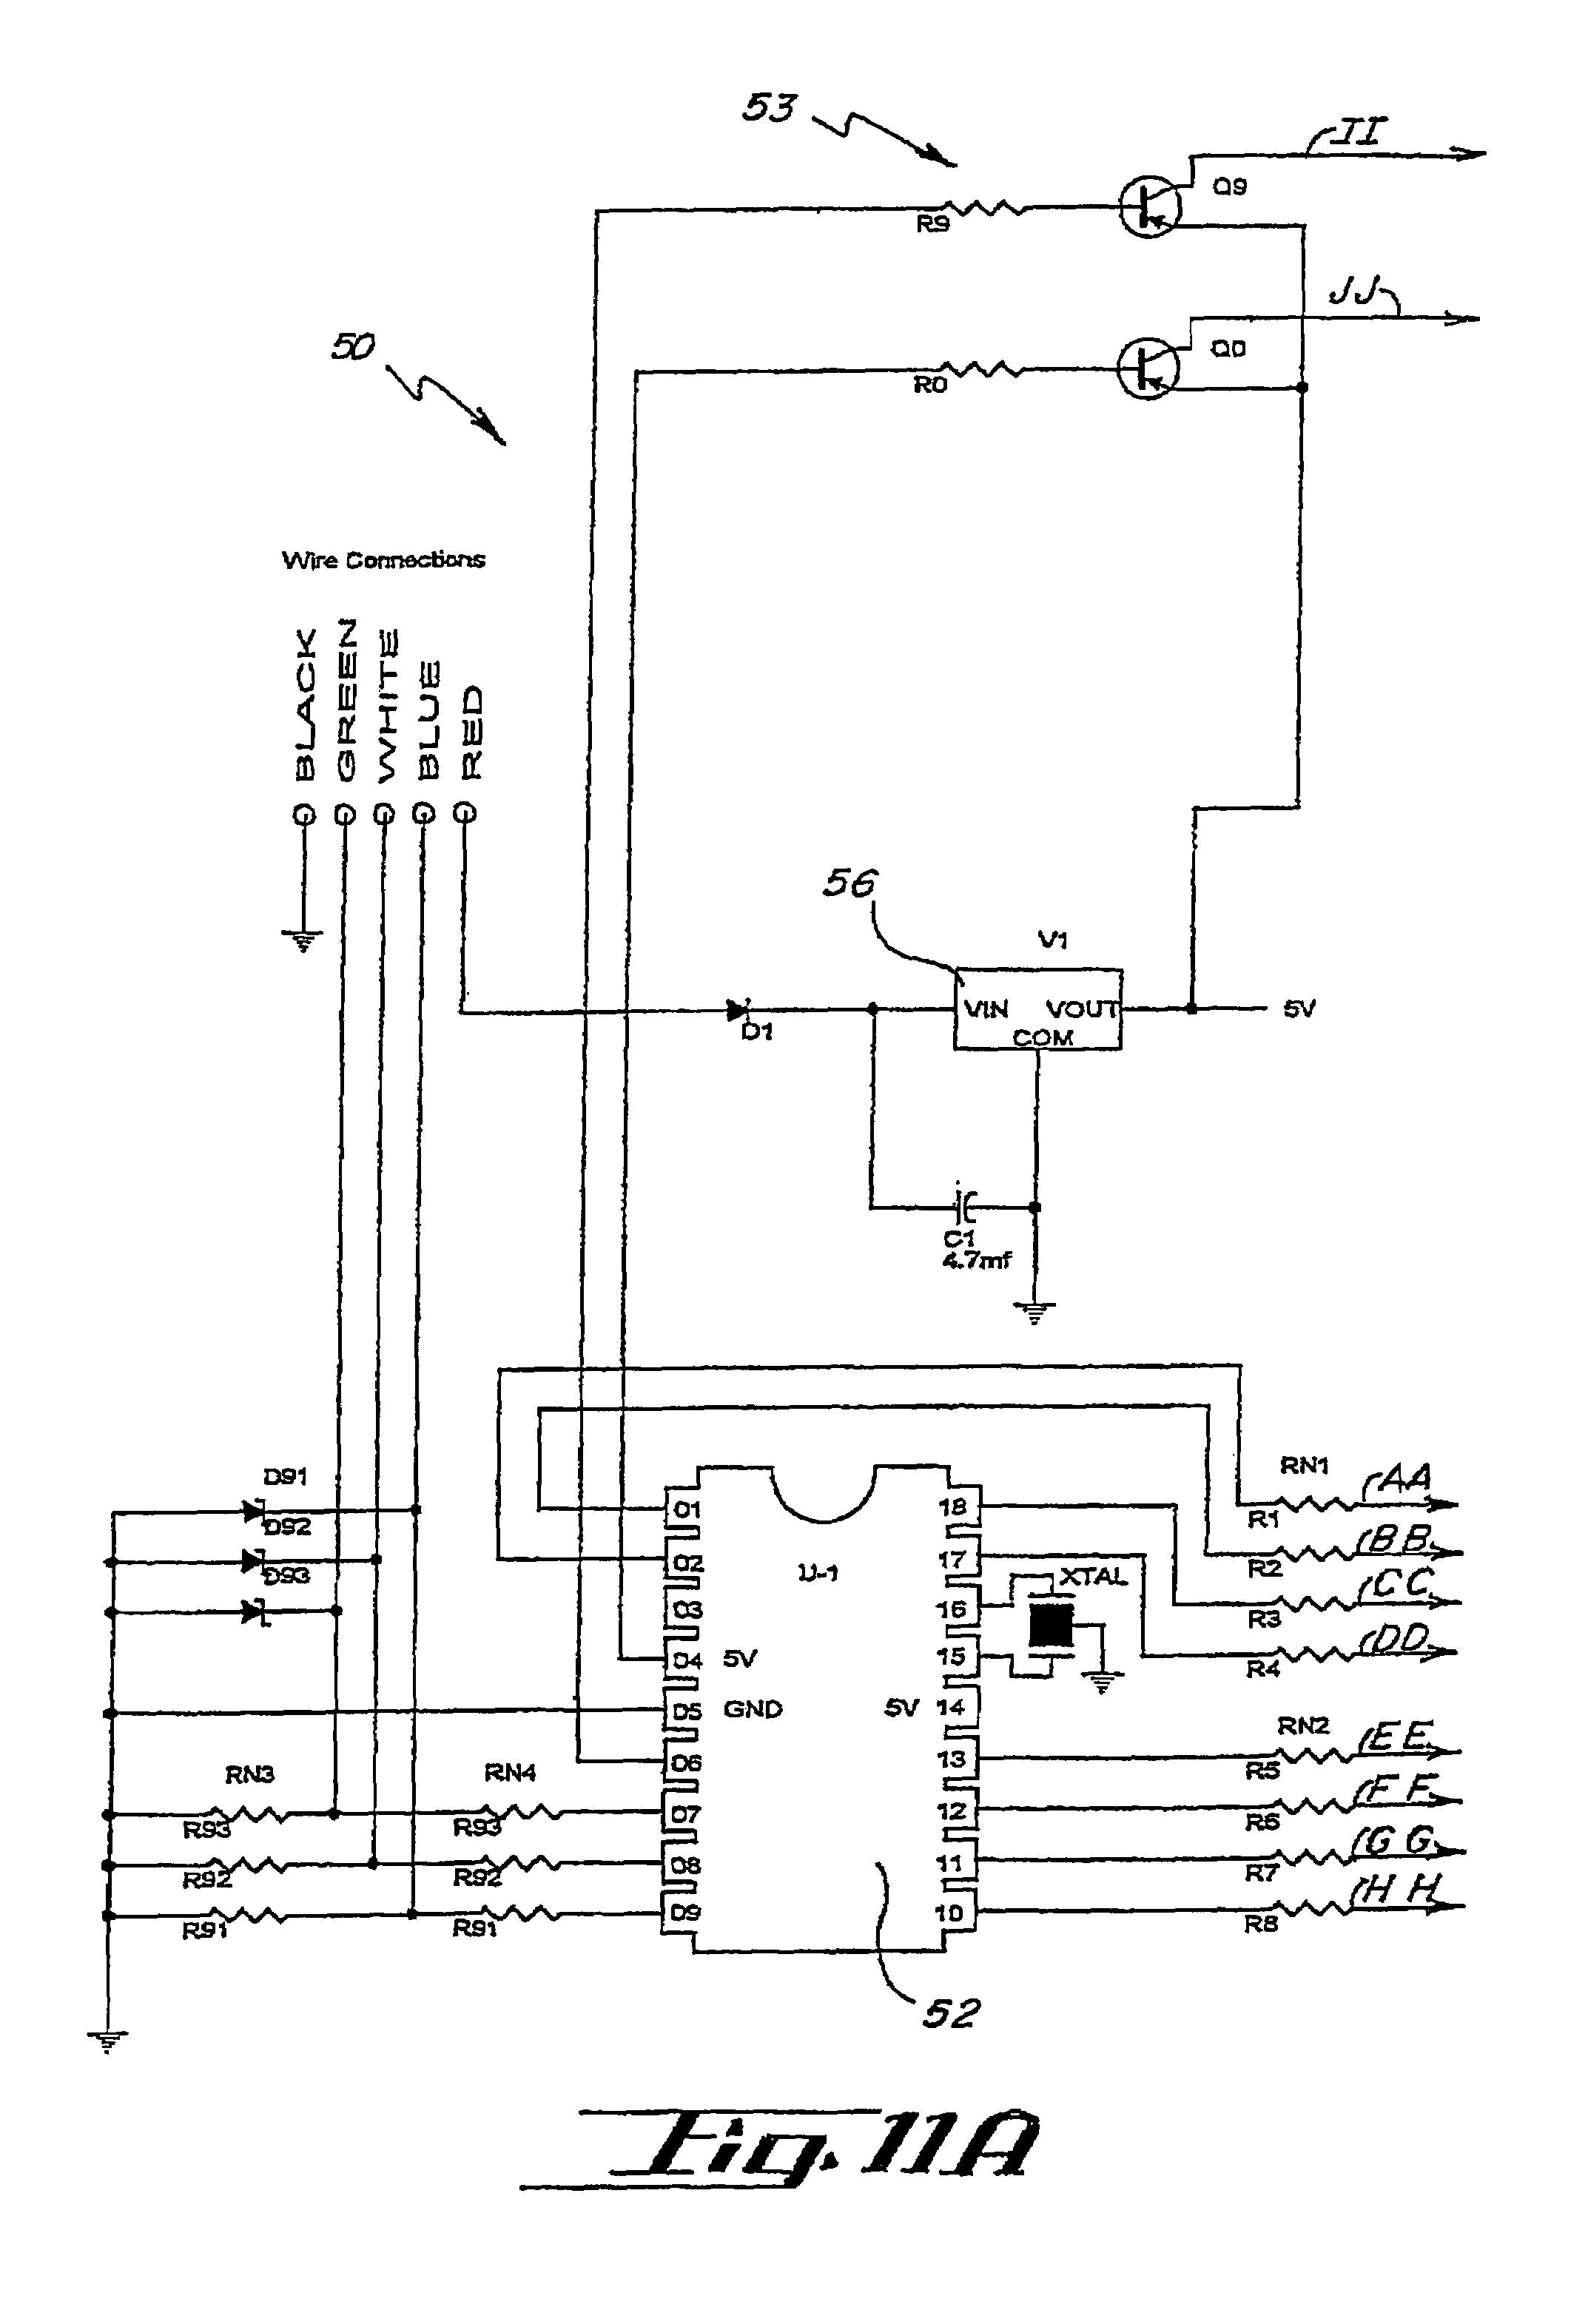 best of wiring diagram for shop lights diagrams digramssample diagramimages wiringdiagramsample wiringdiagram [ 2146 x 3141 Pixel ]